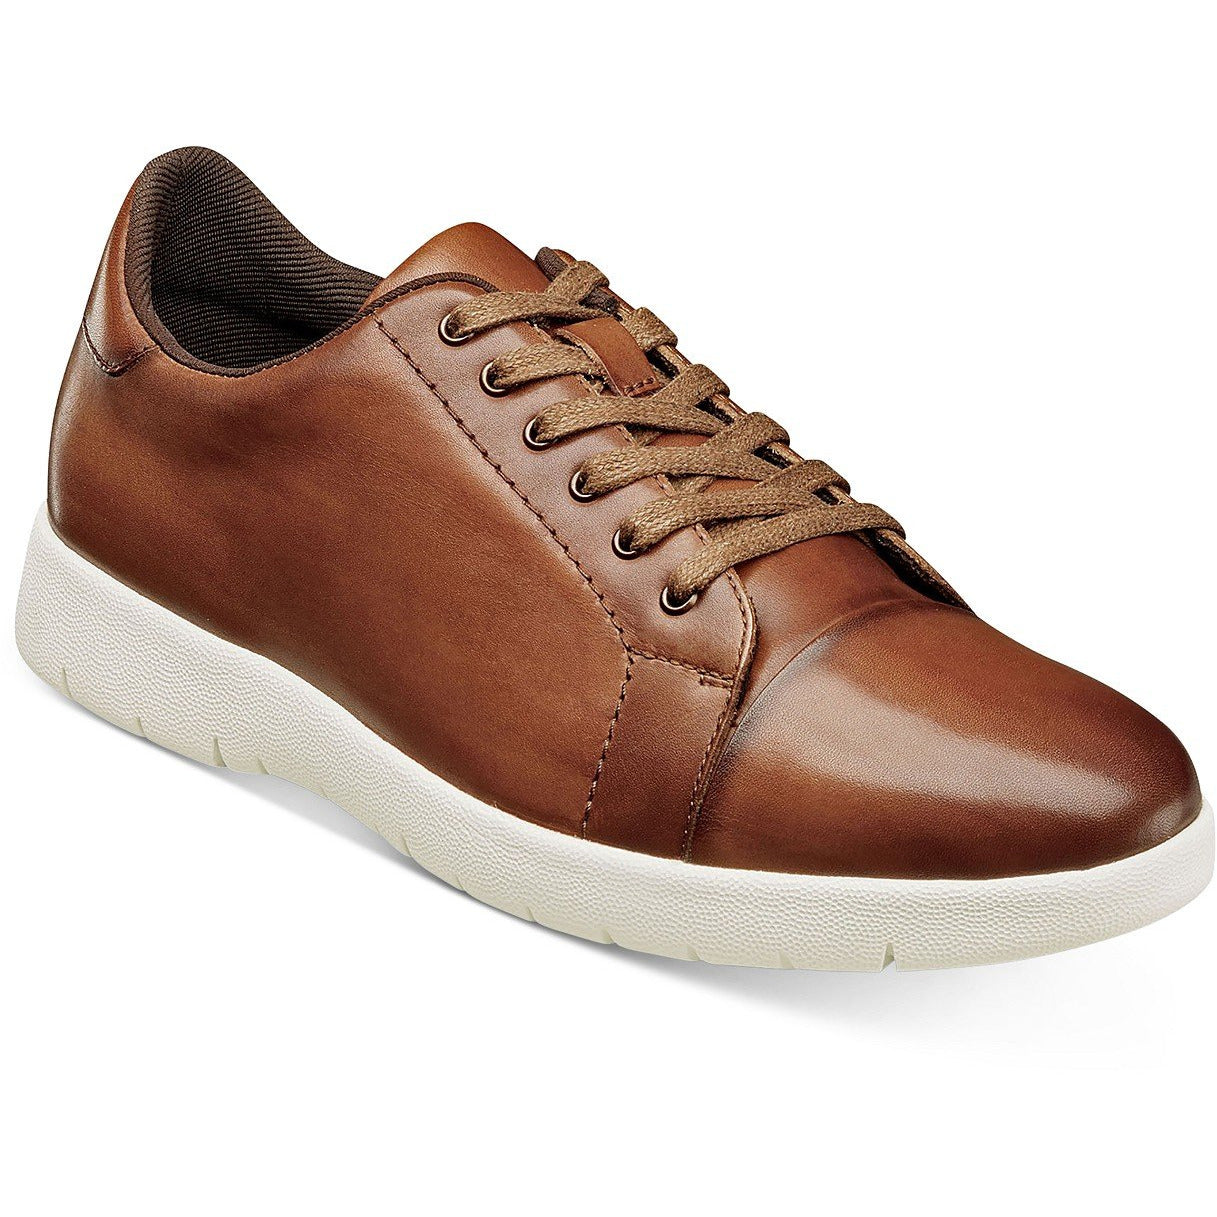 STACY ADAMS - (A3264) Hawkins Cap Toe (Cognac)